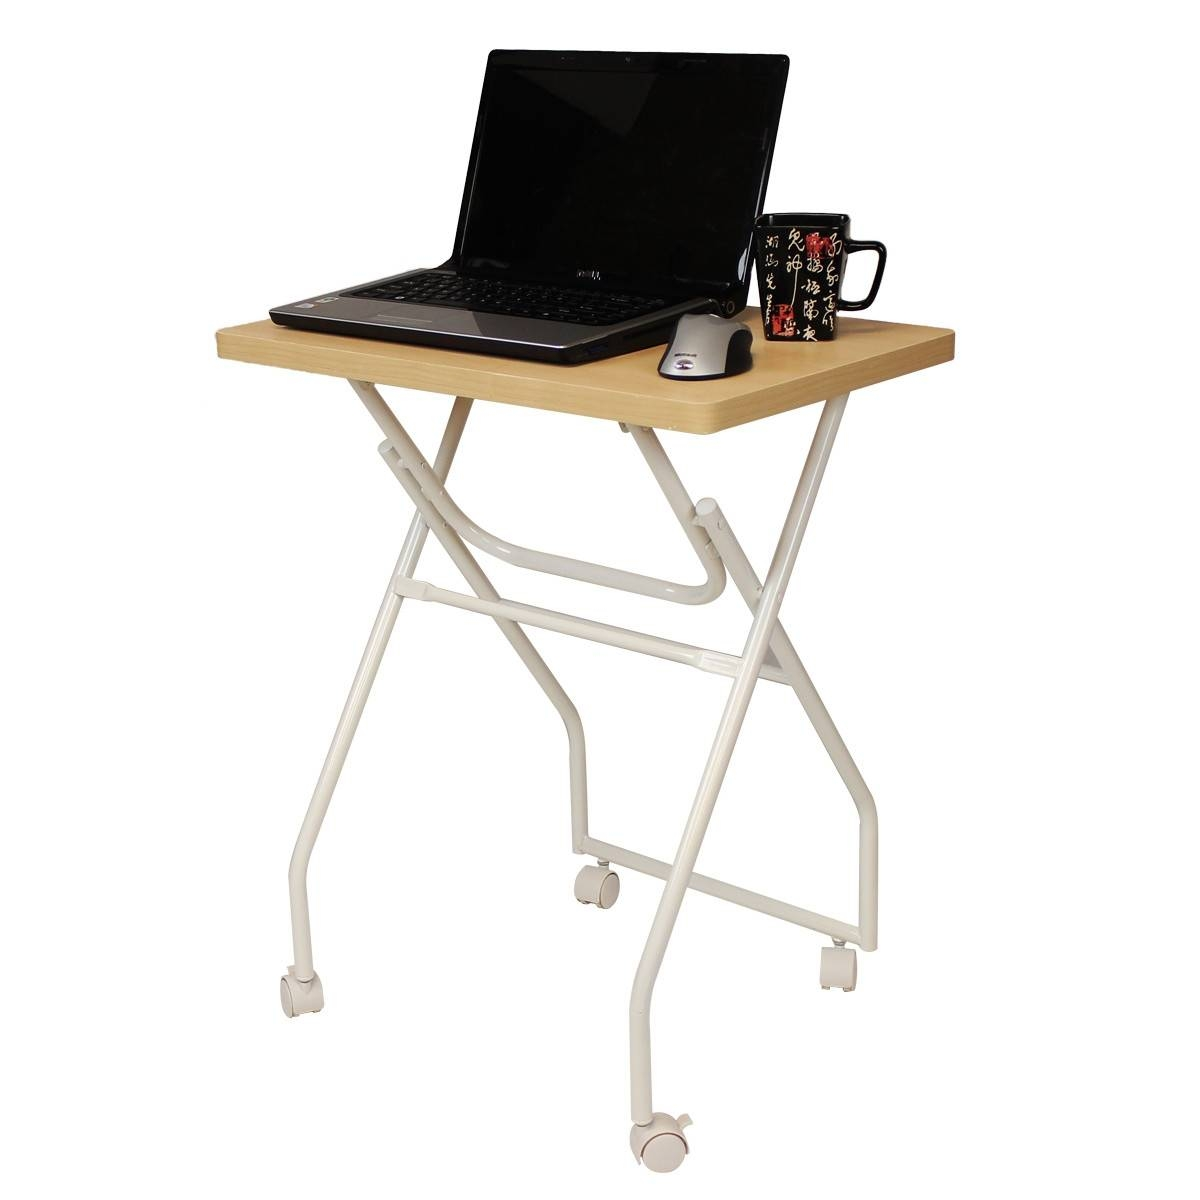 Wood Coffee Table Tv Or Laptop Tray With White Metal Stand And pertaining to Folding Tv Trays With Stand (Image 12 of 15)